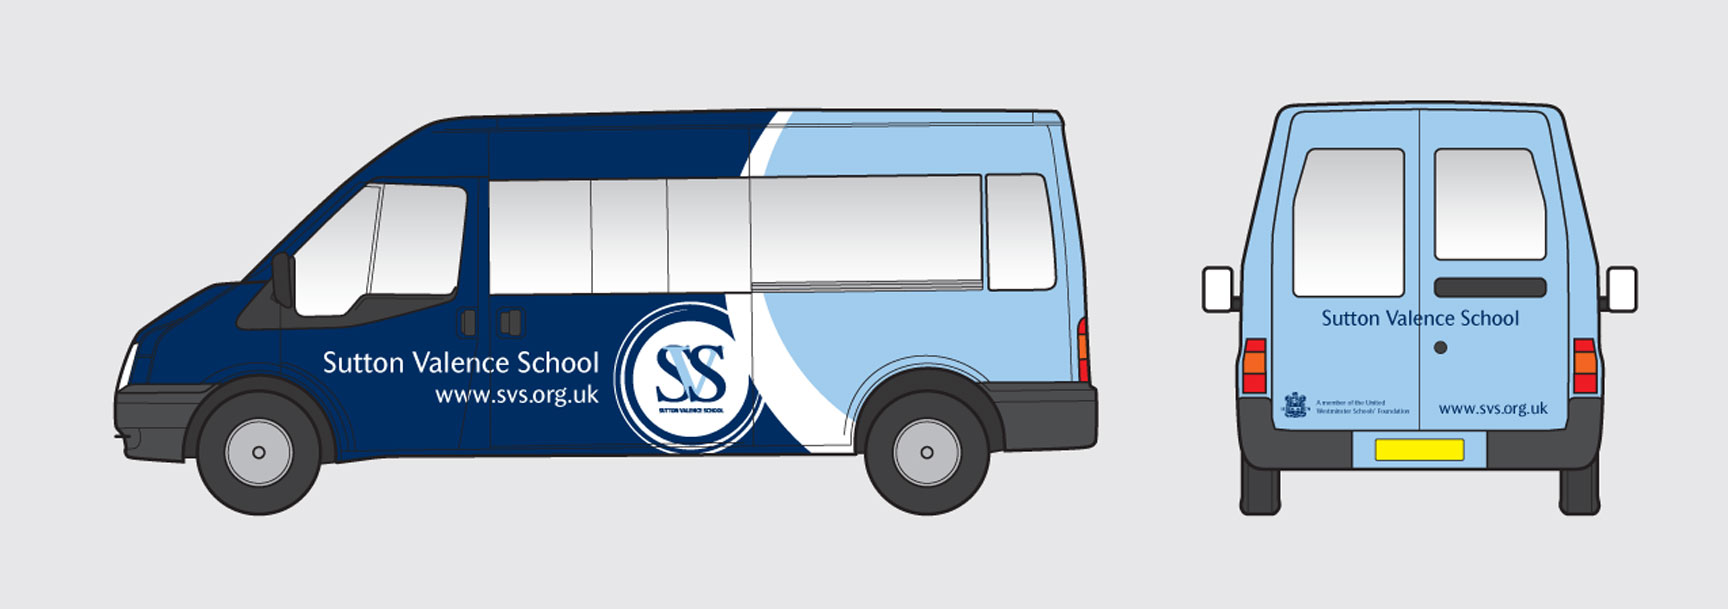 Sutton Valence School Vehicle Livery – independent school branding – CHP Design